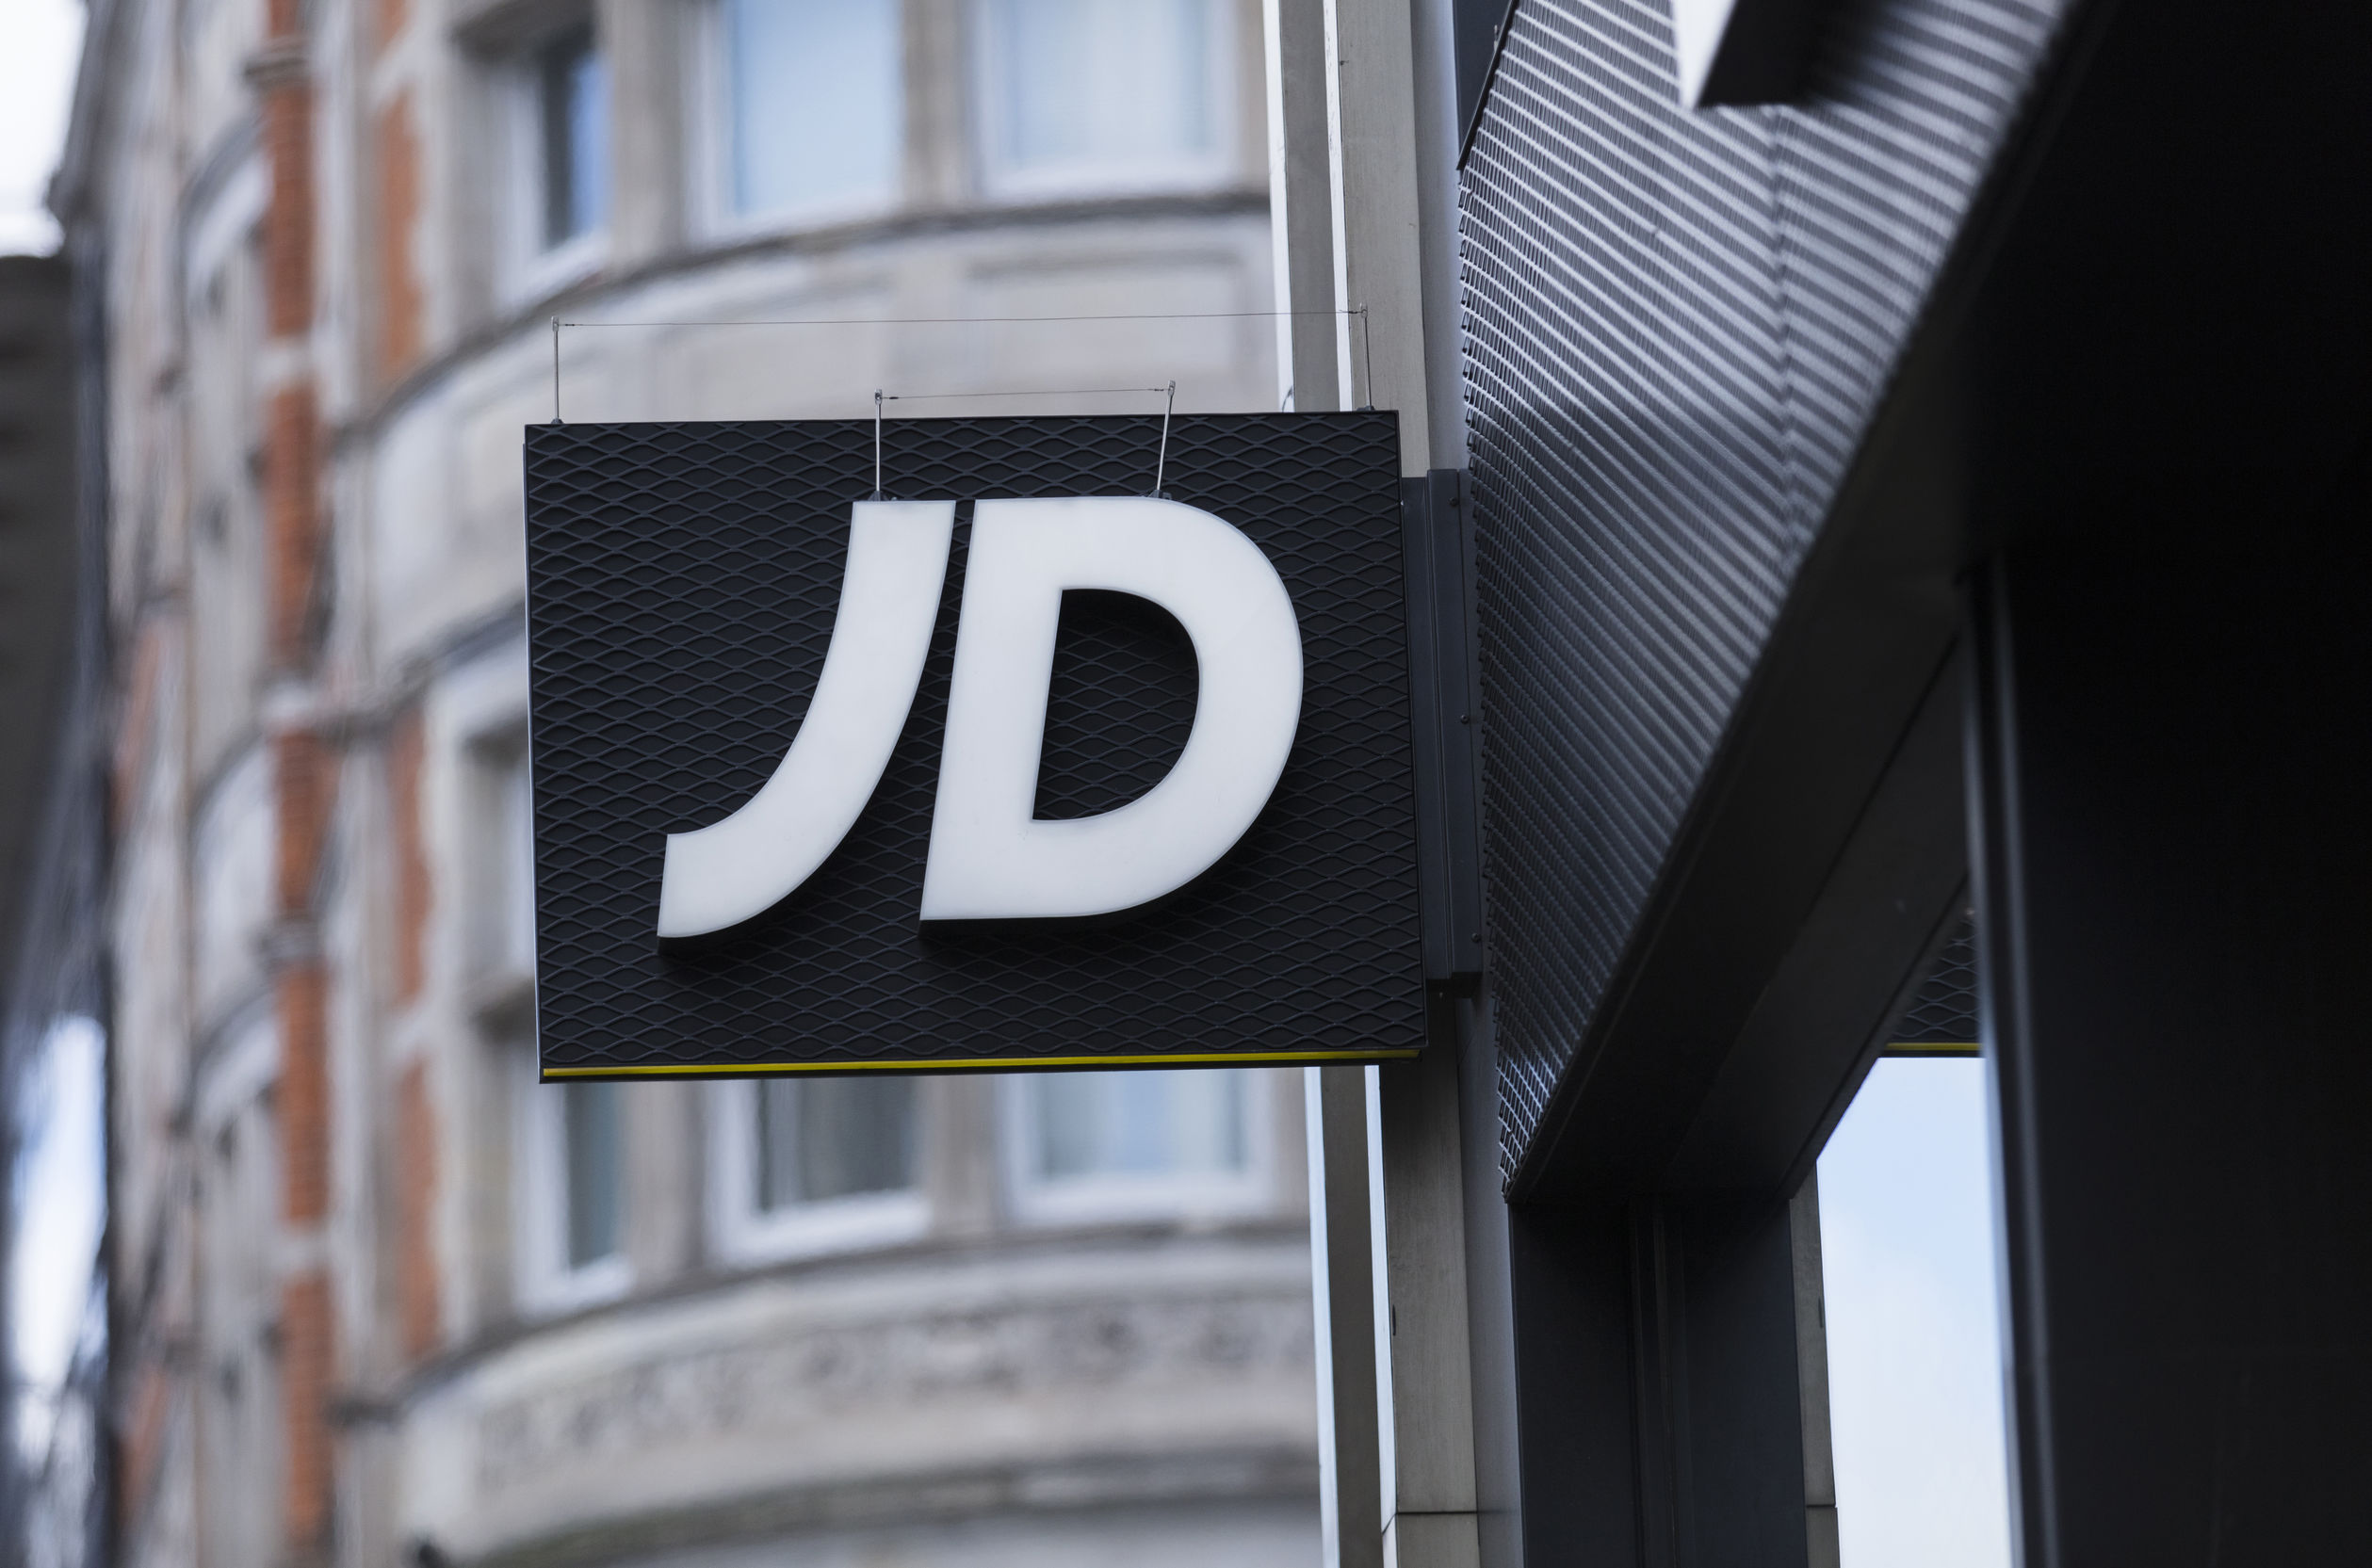 jd sports nhs discount